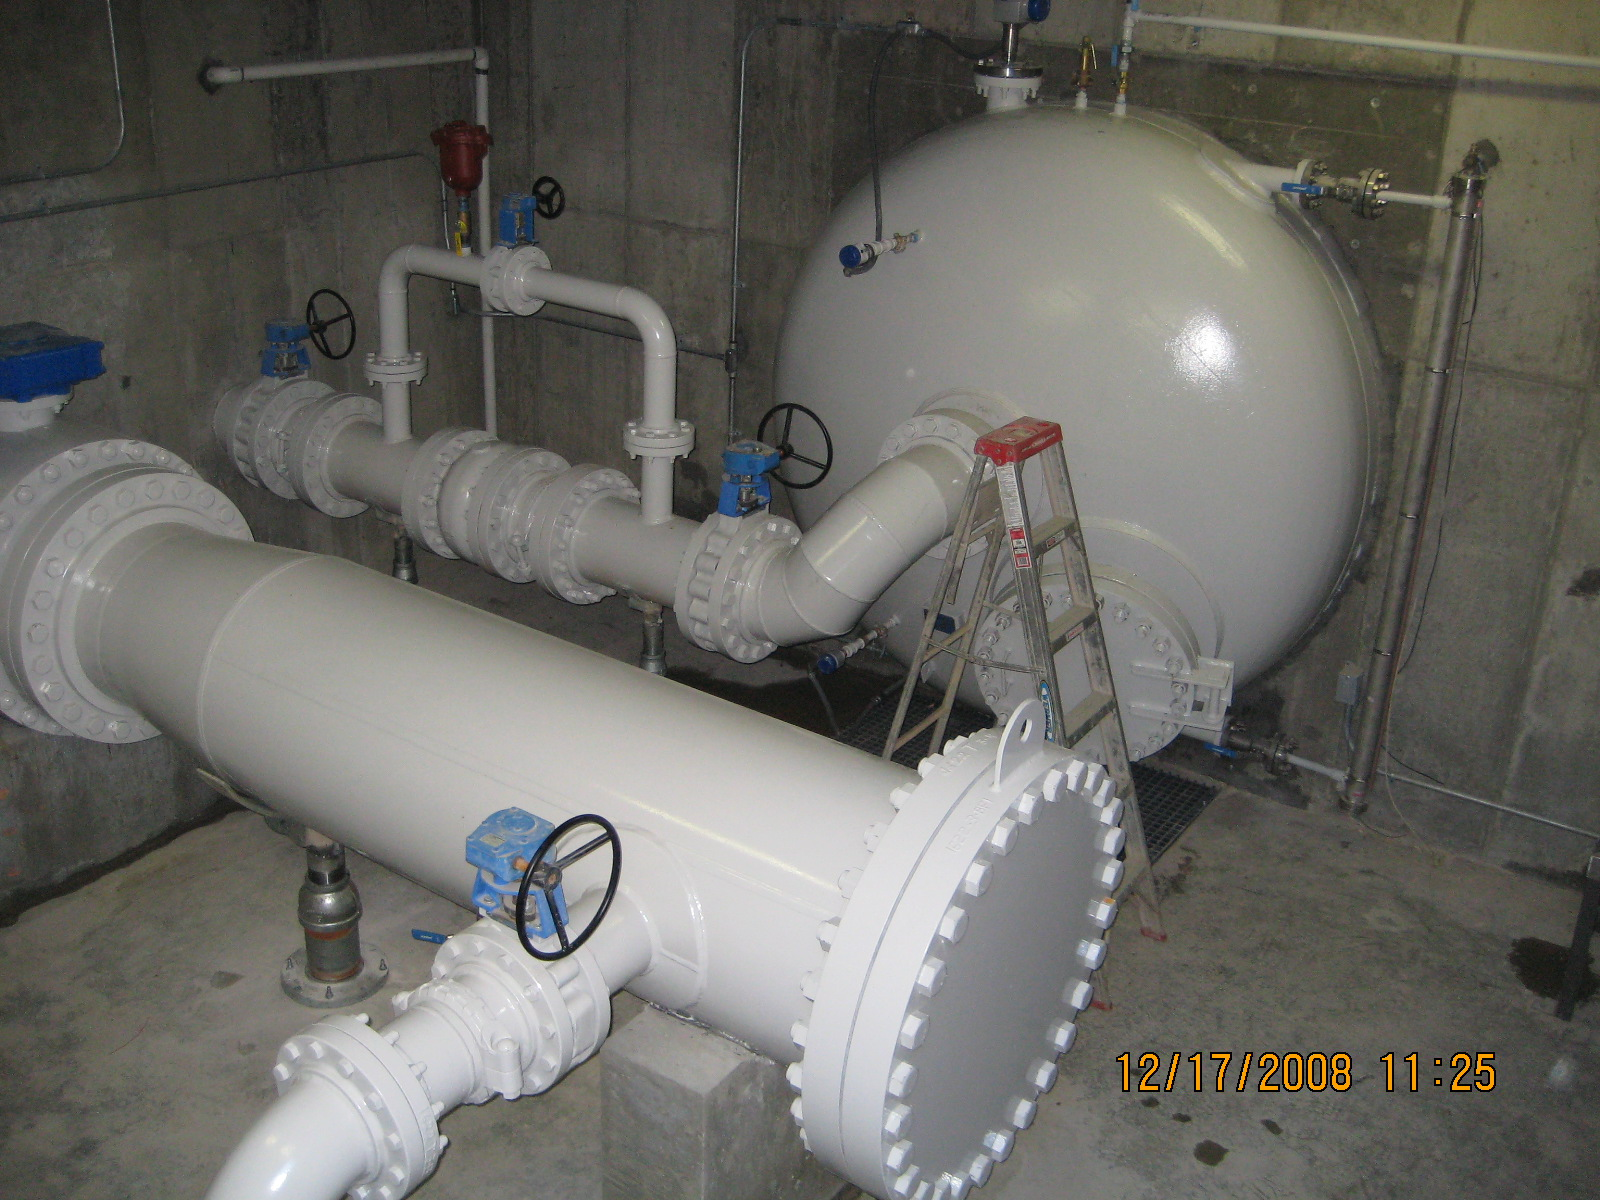 Large water surge tank below pump station to handle water hammer in the event of a power failure. Pipeline PIG launching facility is also shown.